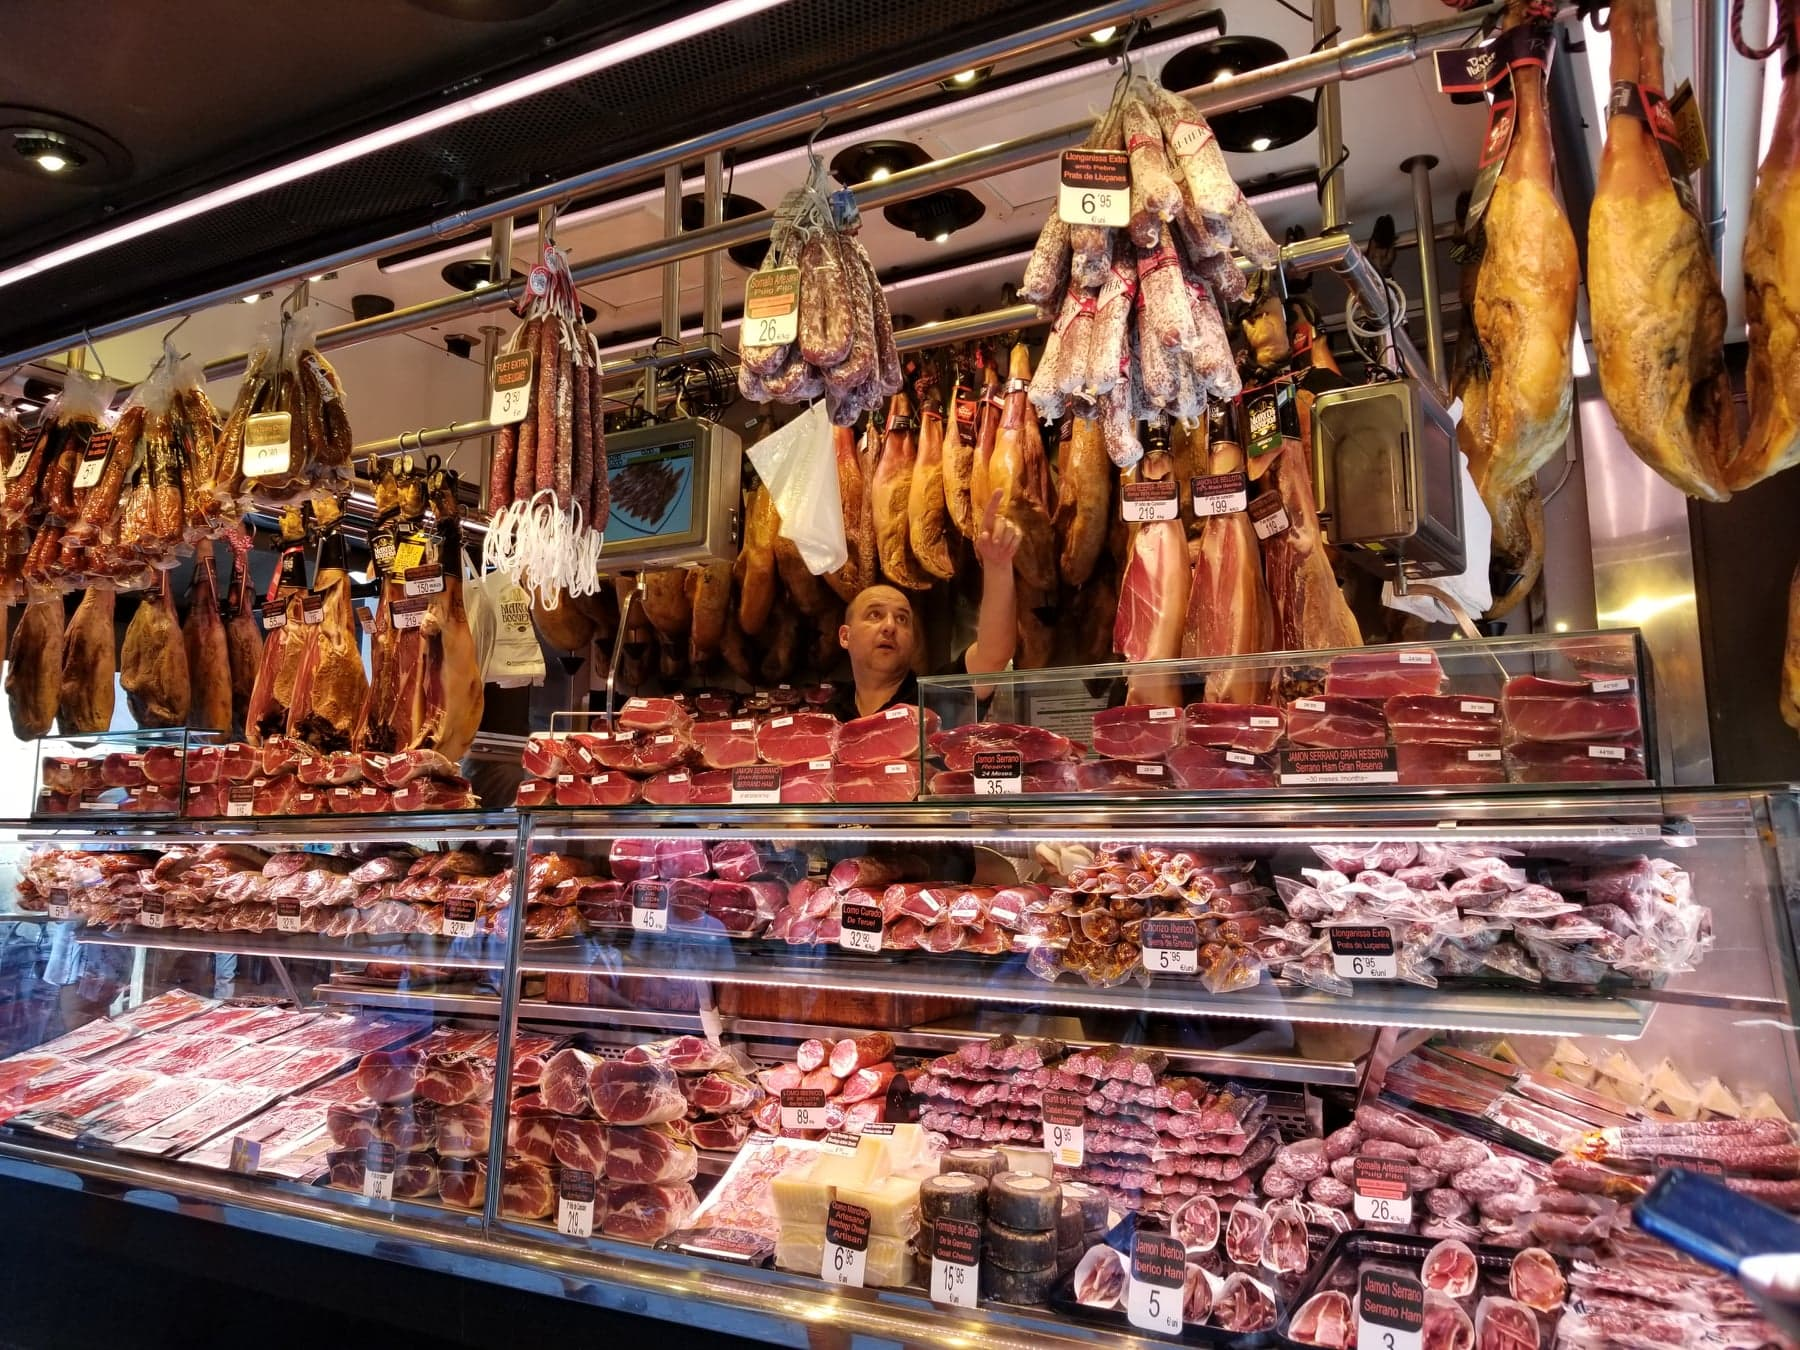 first time in Barcelona - La boqueria jamon